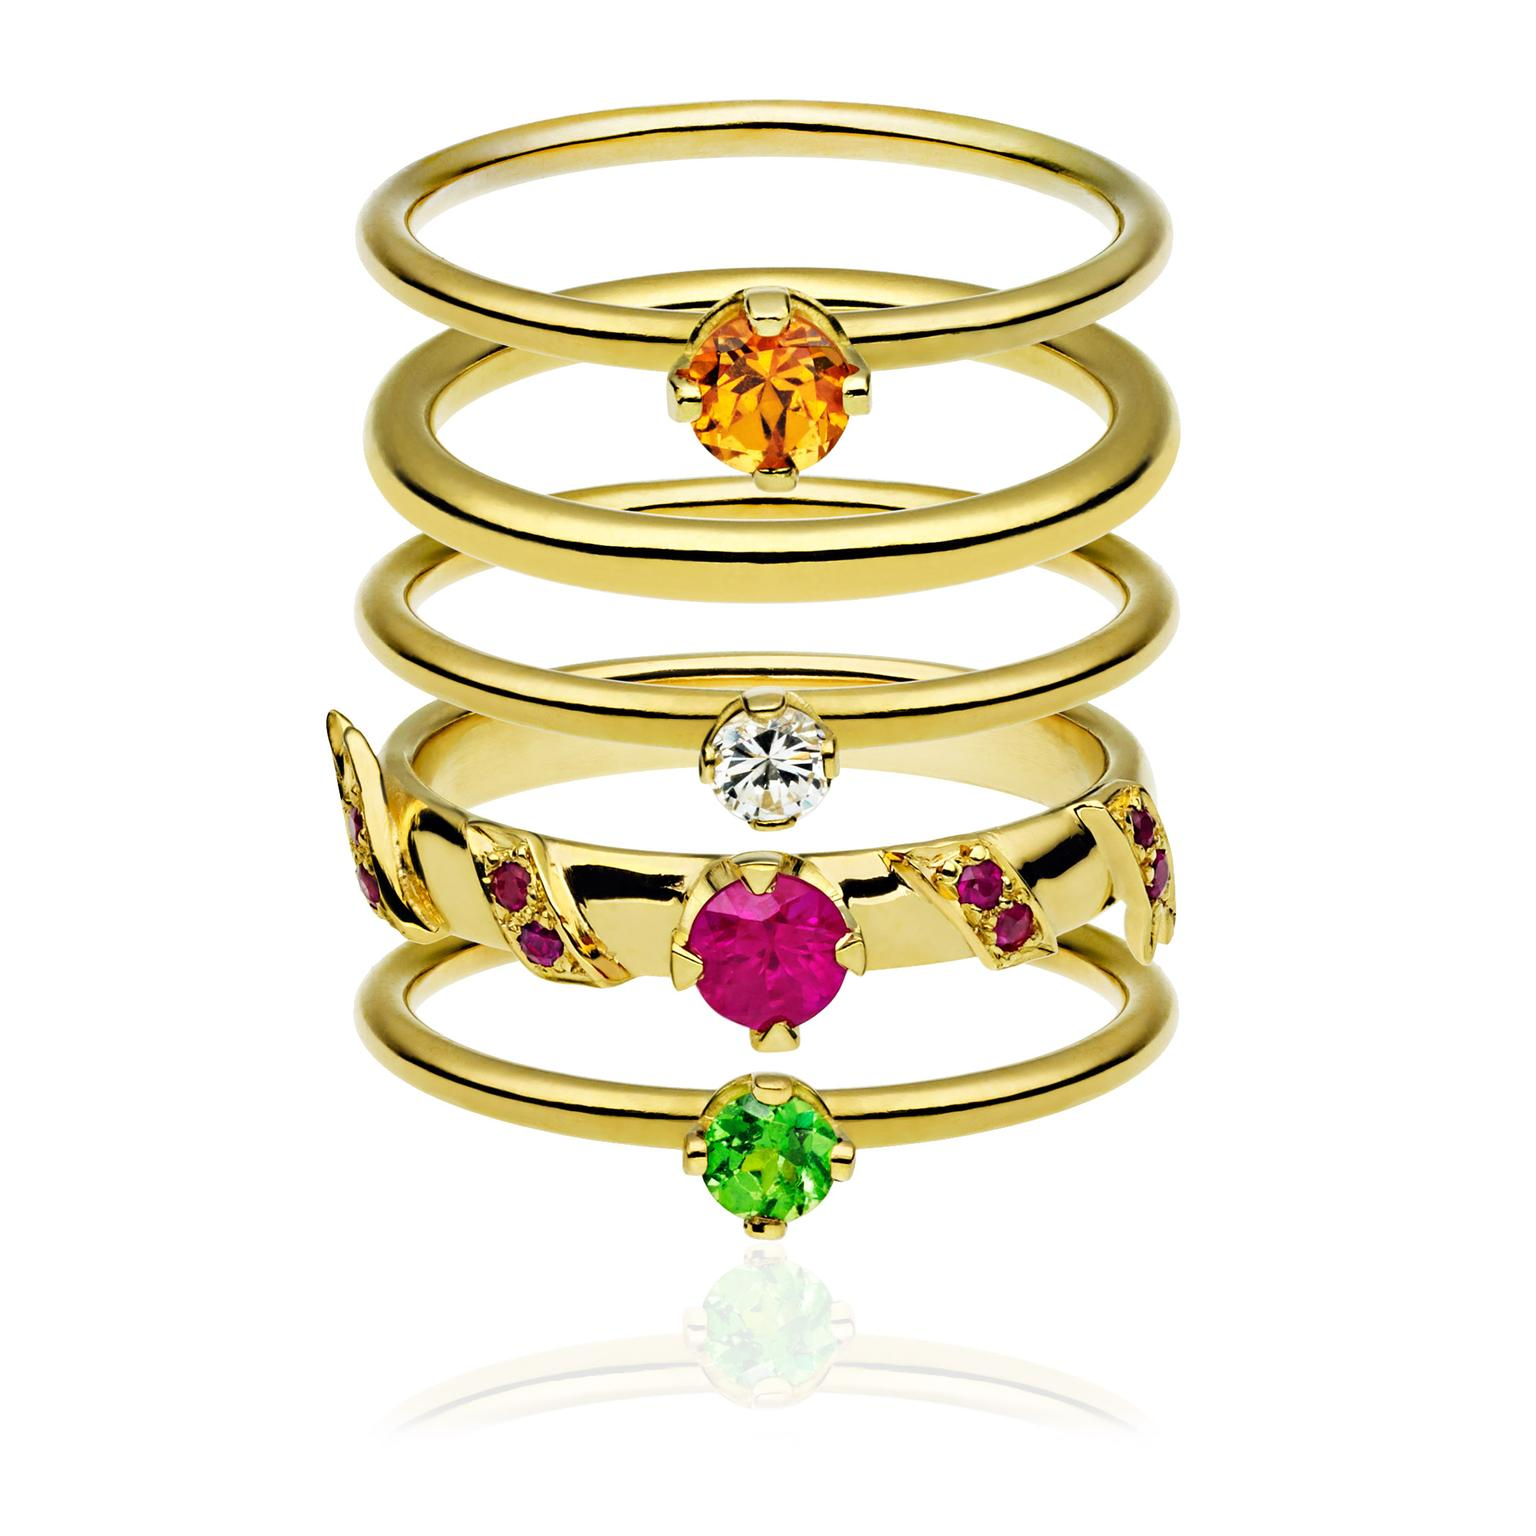 Ana-de-Costa-Stacking-Rings-Zoom